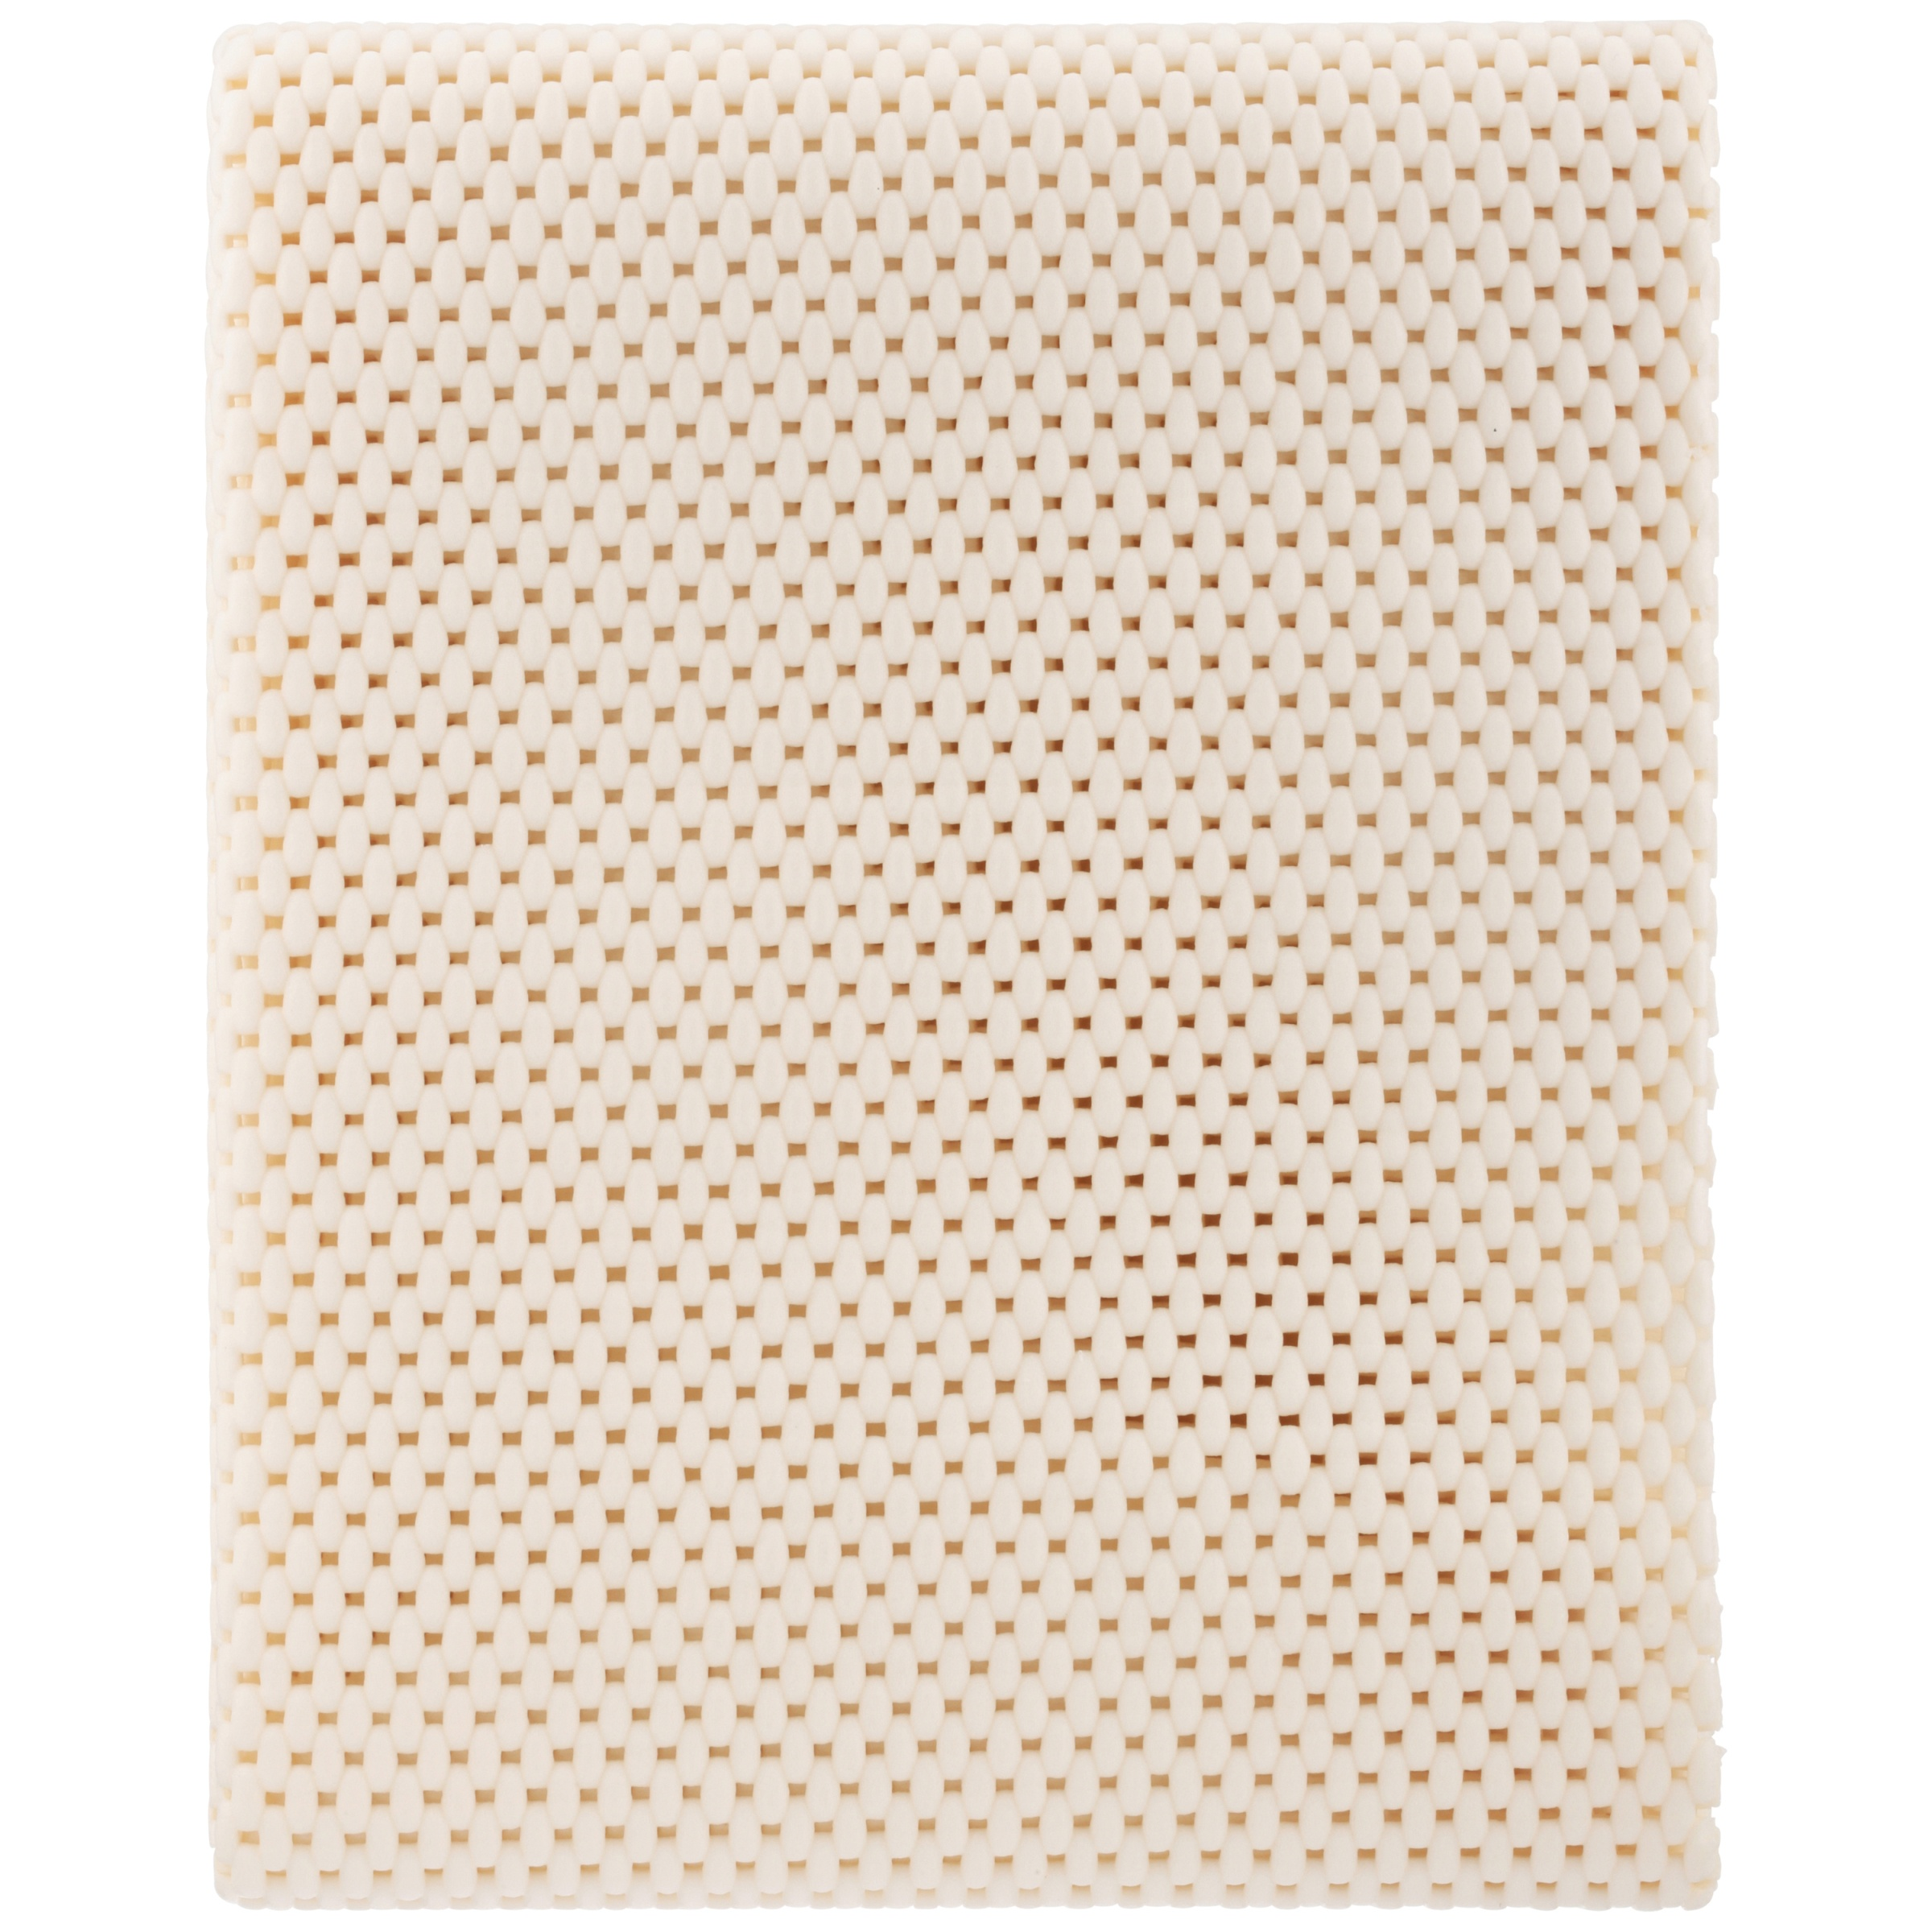 Better Homes and Gardens Premium Cushioned Non-Slip Rug Pad by Better Homes and Gardens